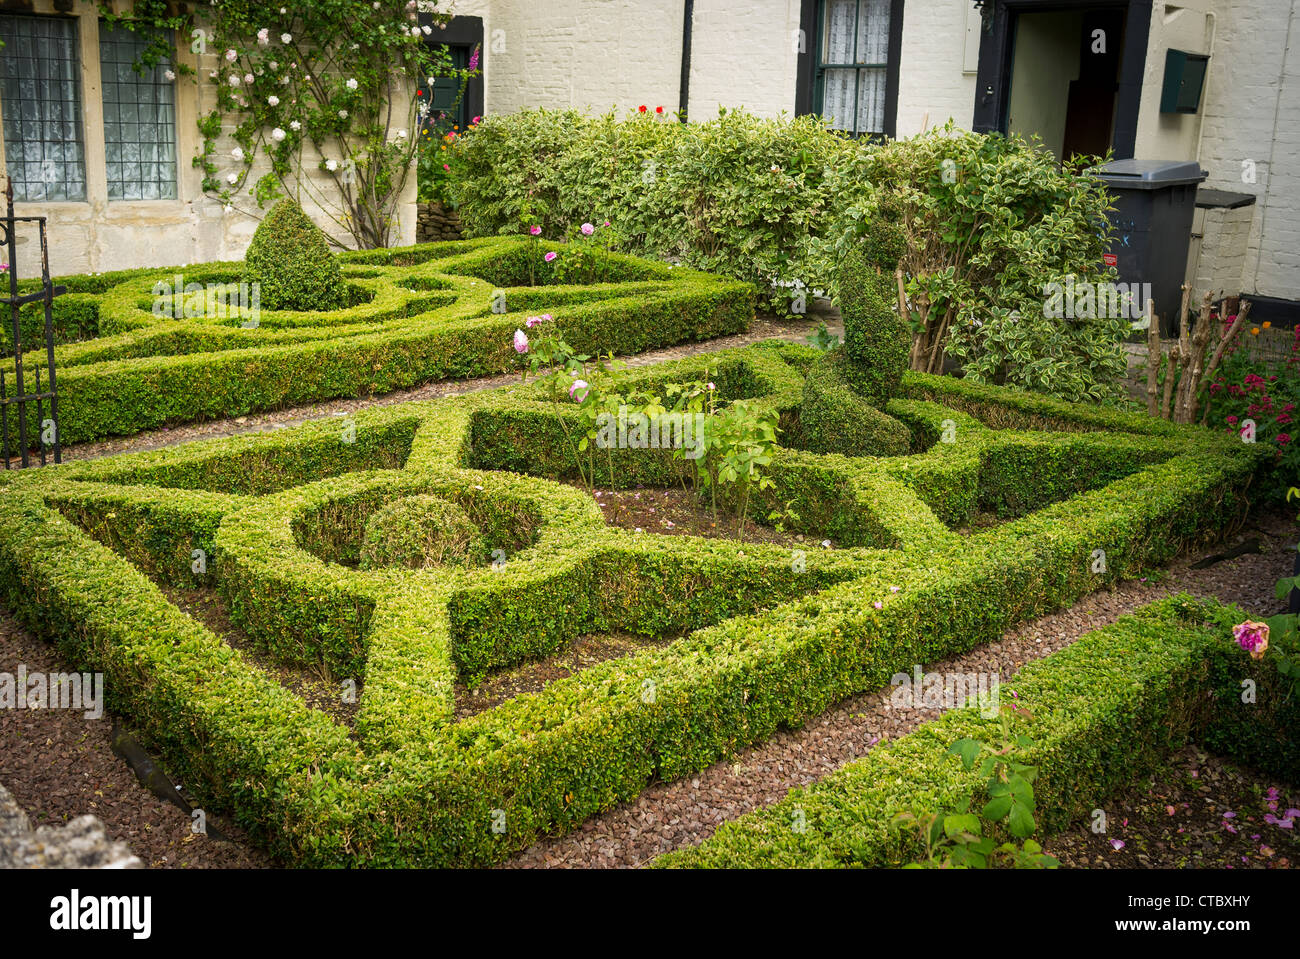 Neat box parterre in small town garden - Stock Image